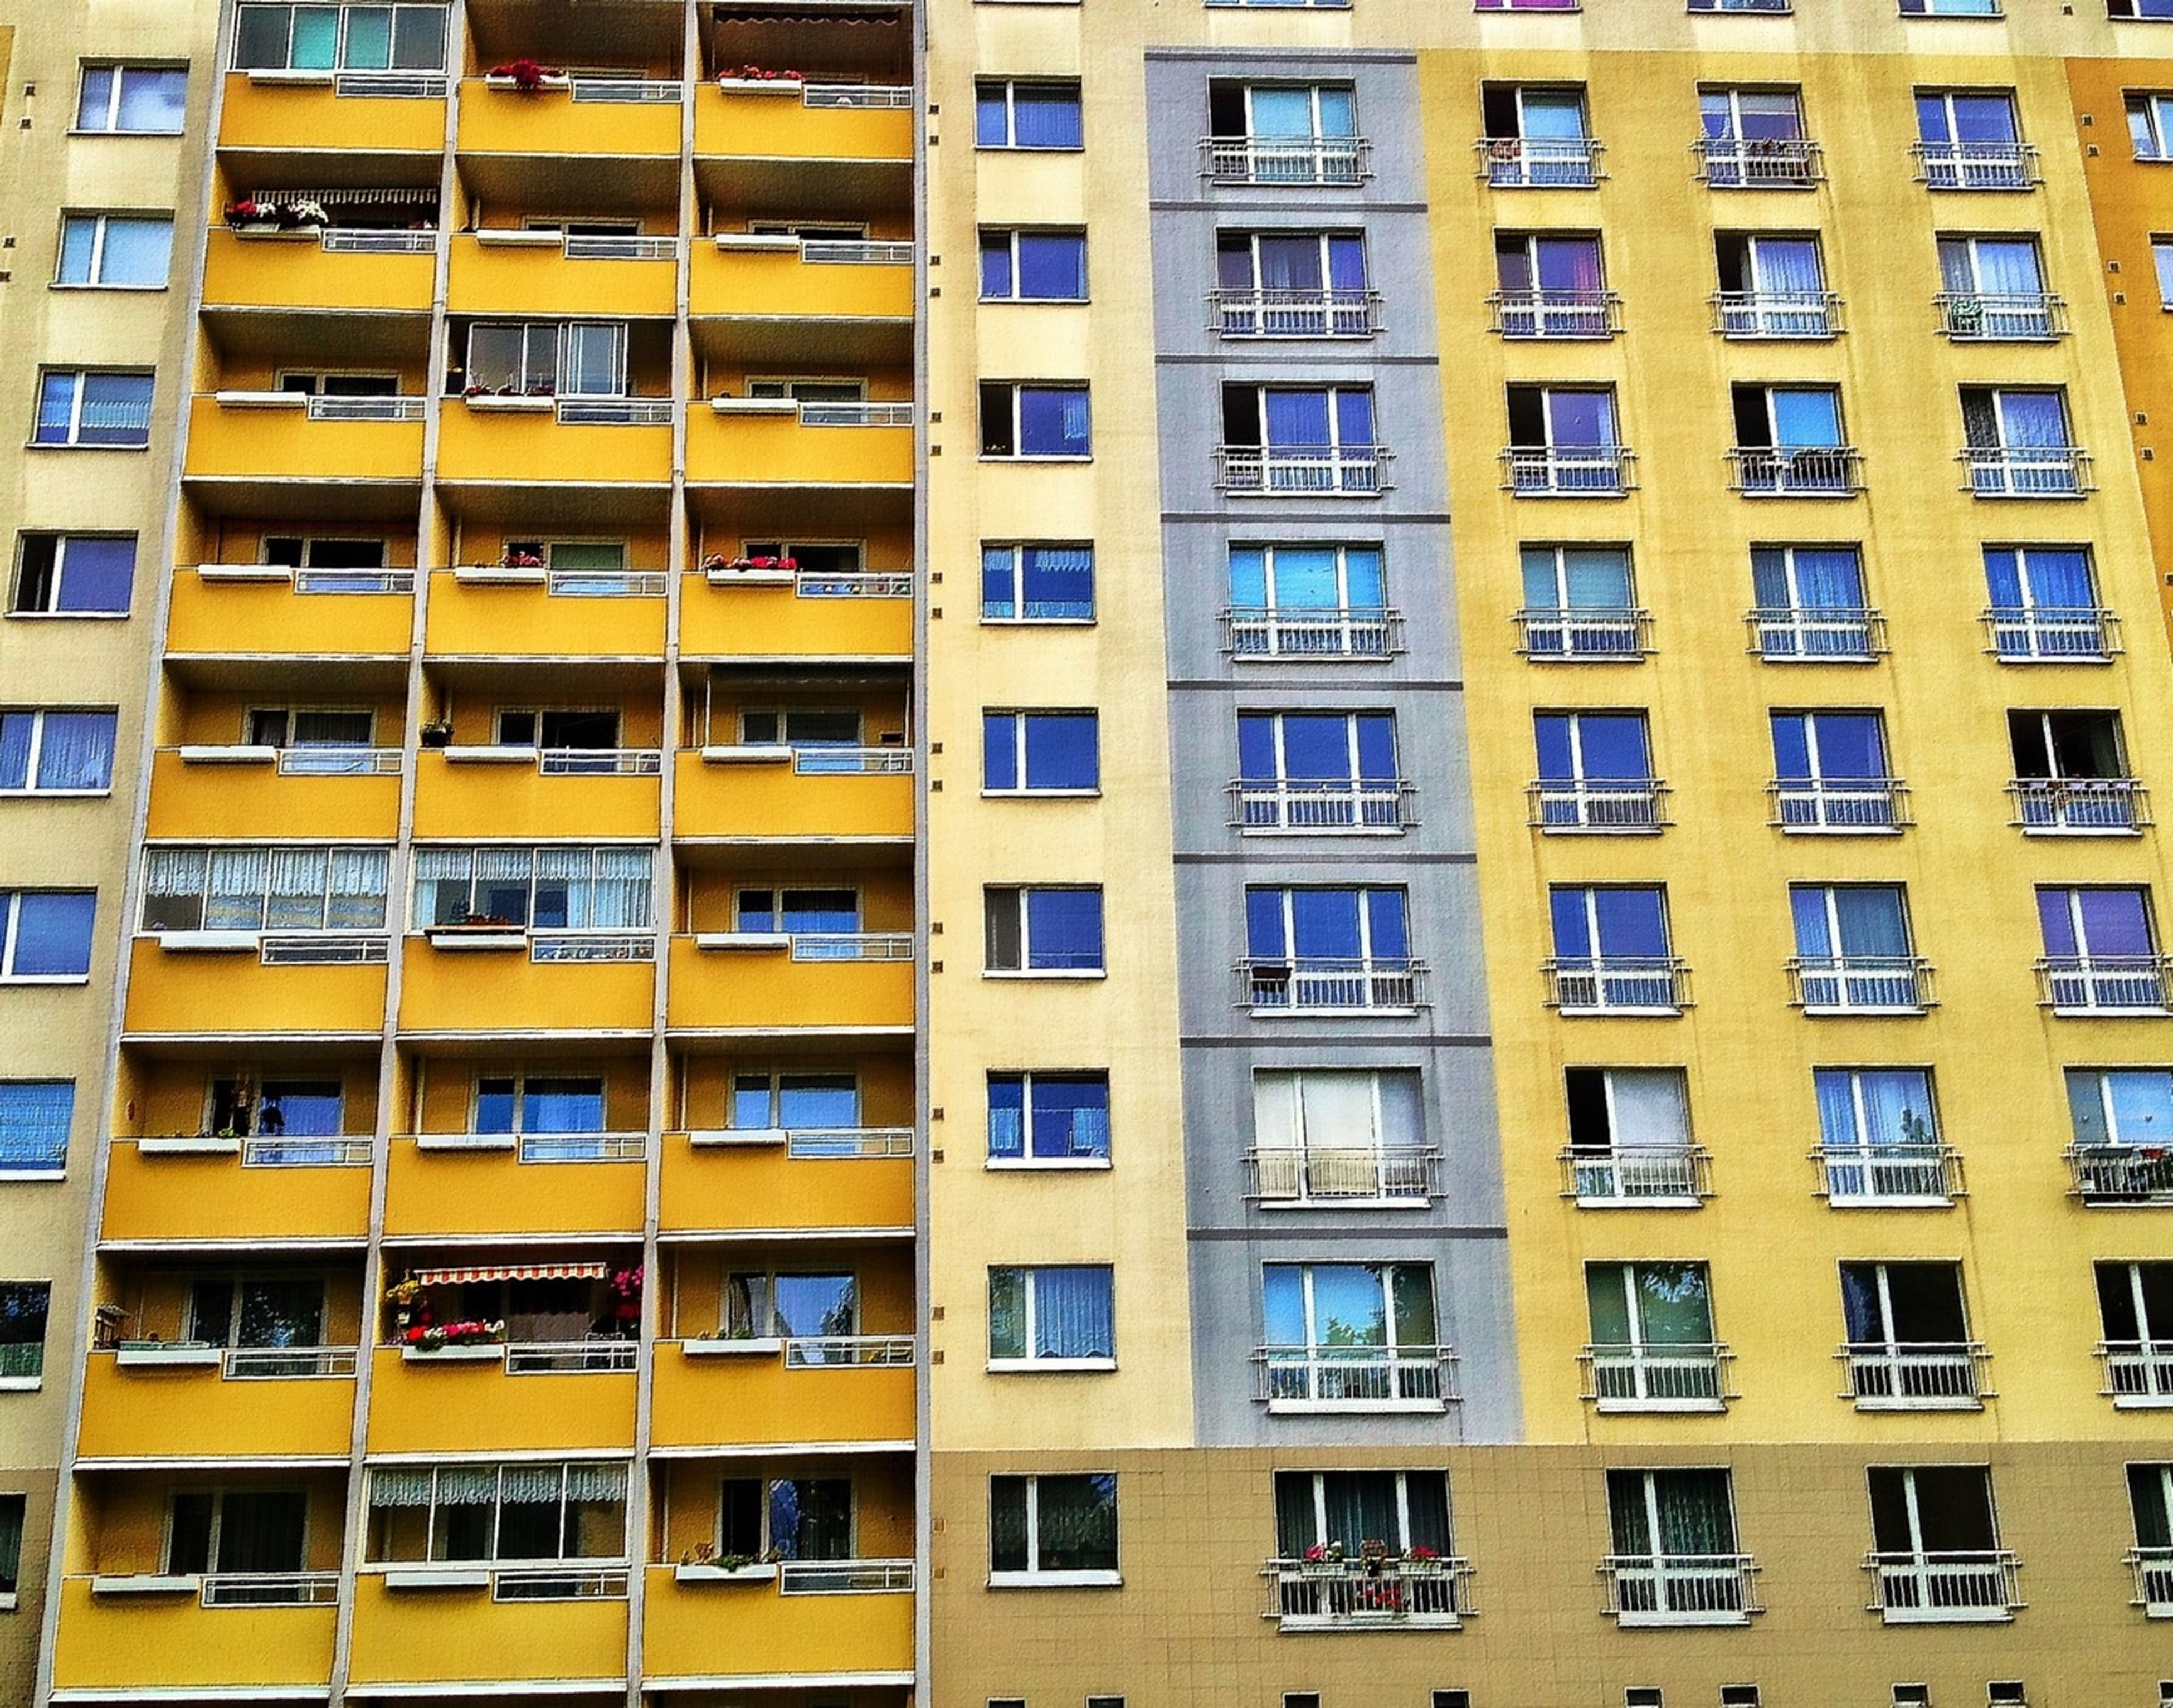 building exterior, architecture, full frame, built structure, window, backgrounds, repetition, in a row, city, building, apartment, residential building, yellow, balcony, low angle view, residential structure, modern, side by side, glass - material, no people